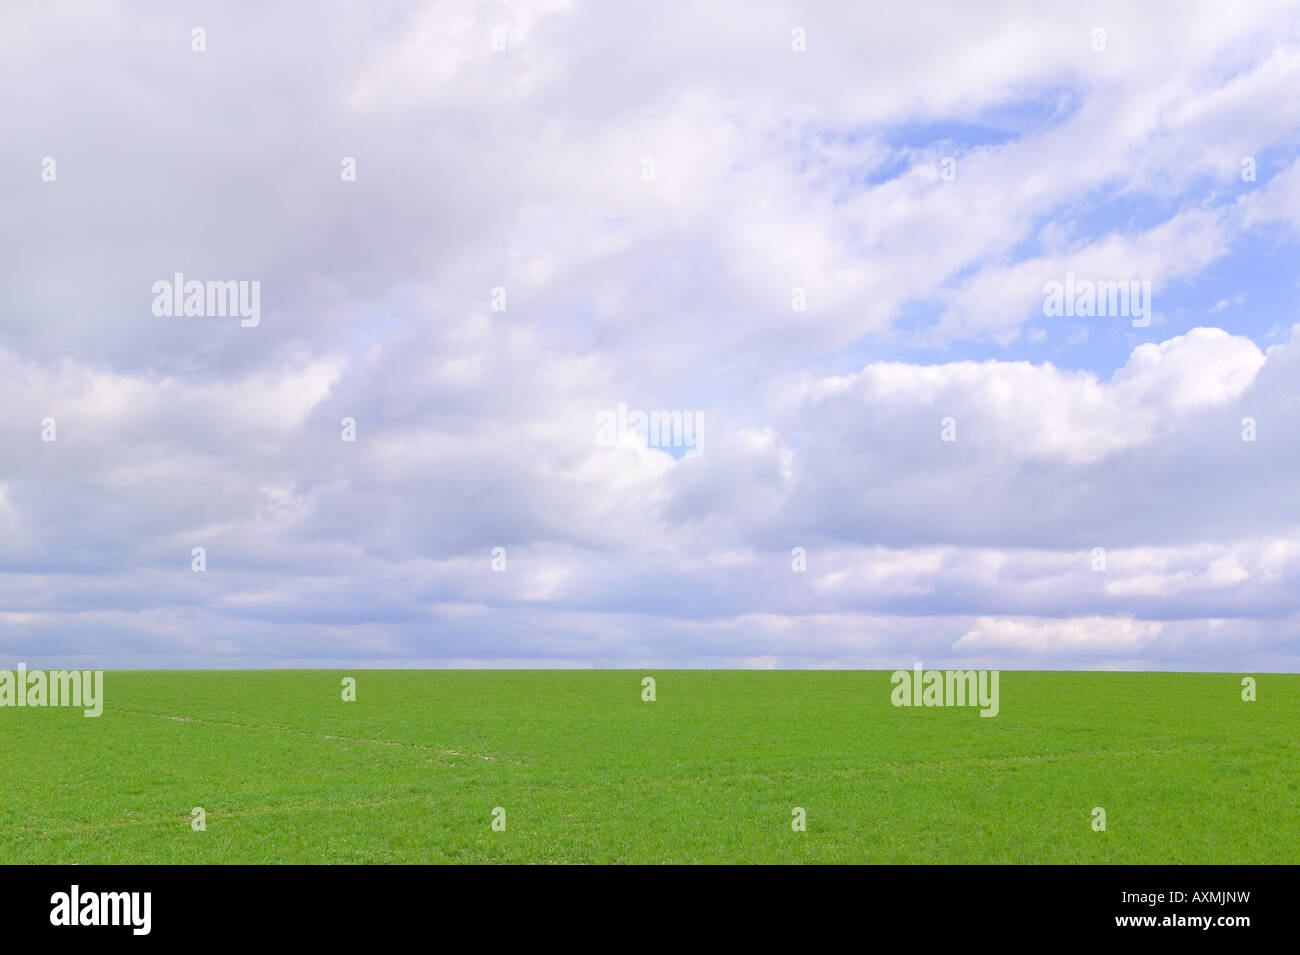 Green field and cloudy sky on a beautiful bright day the grass is nice and fresh after a rain shower - Stock Image